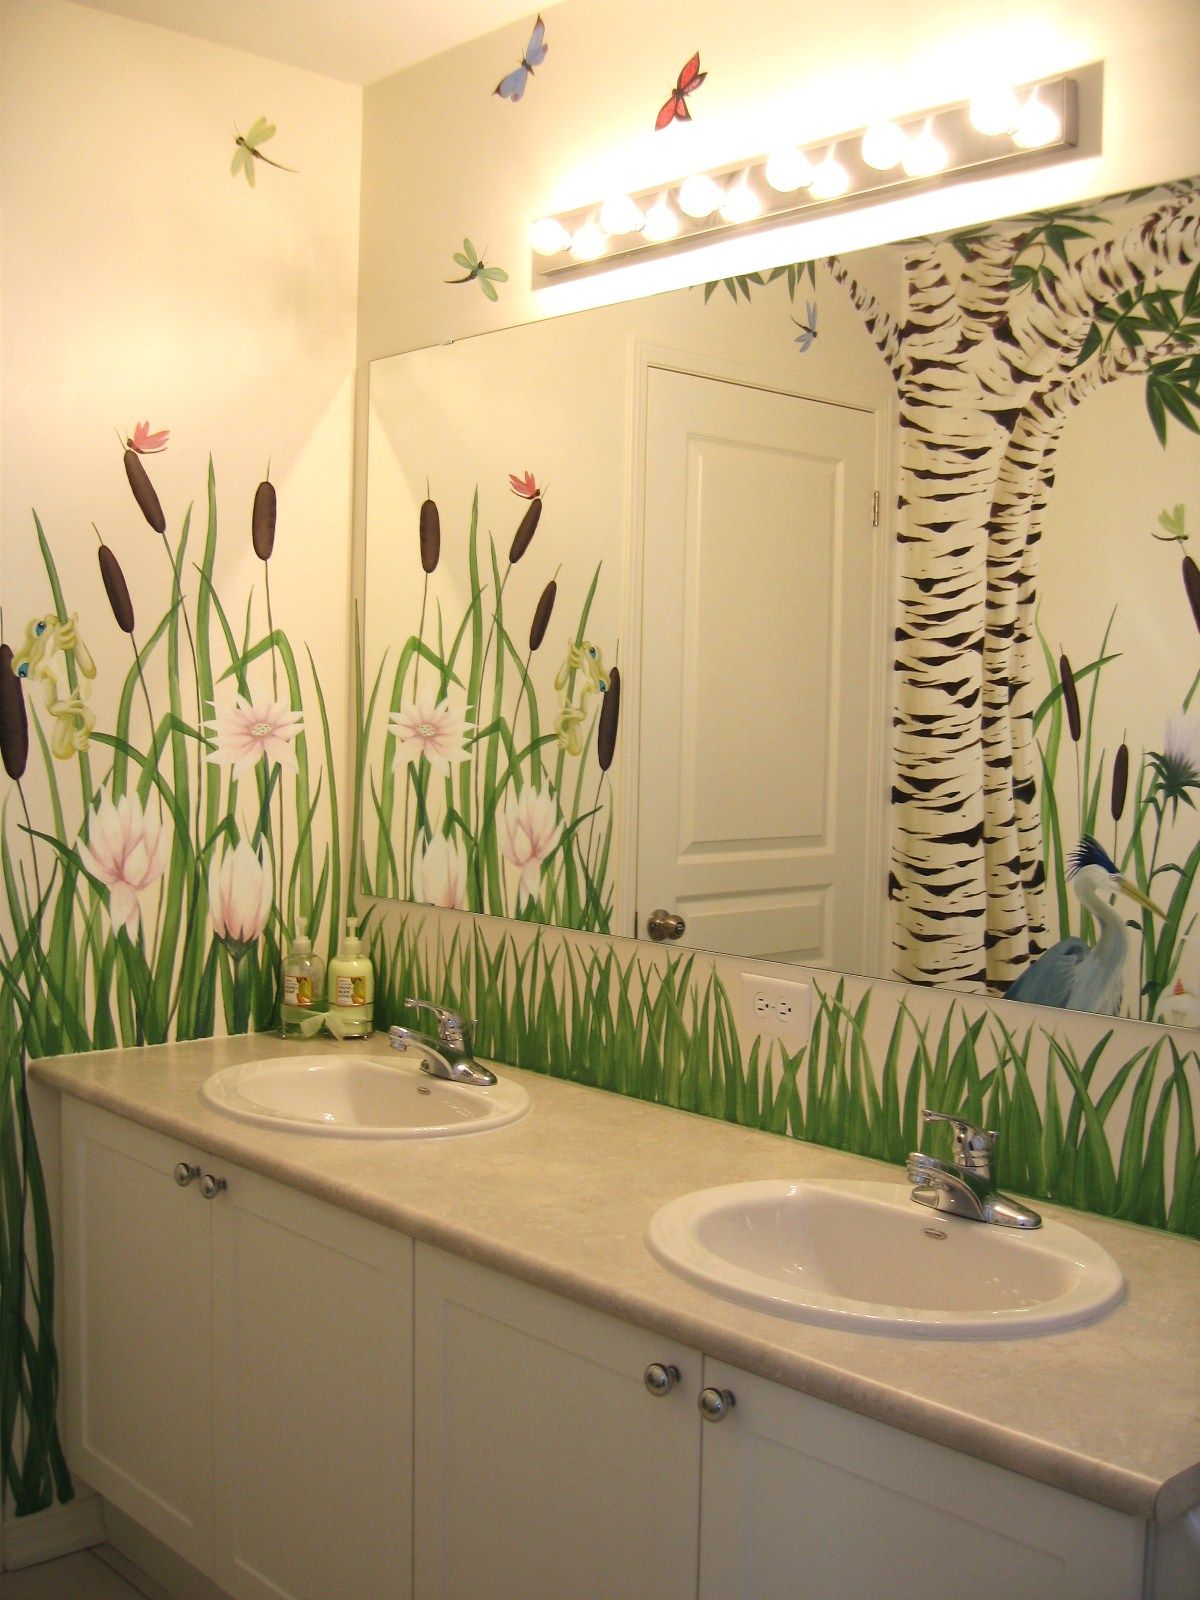 Bathroom mural by Charlotte Hamilton | Murals - window / wall ...